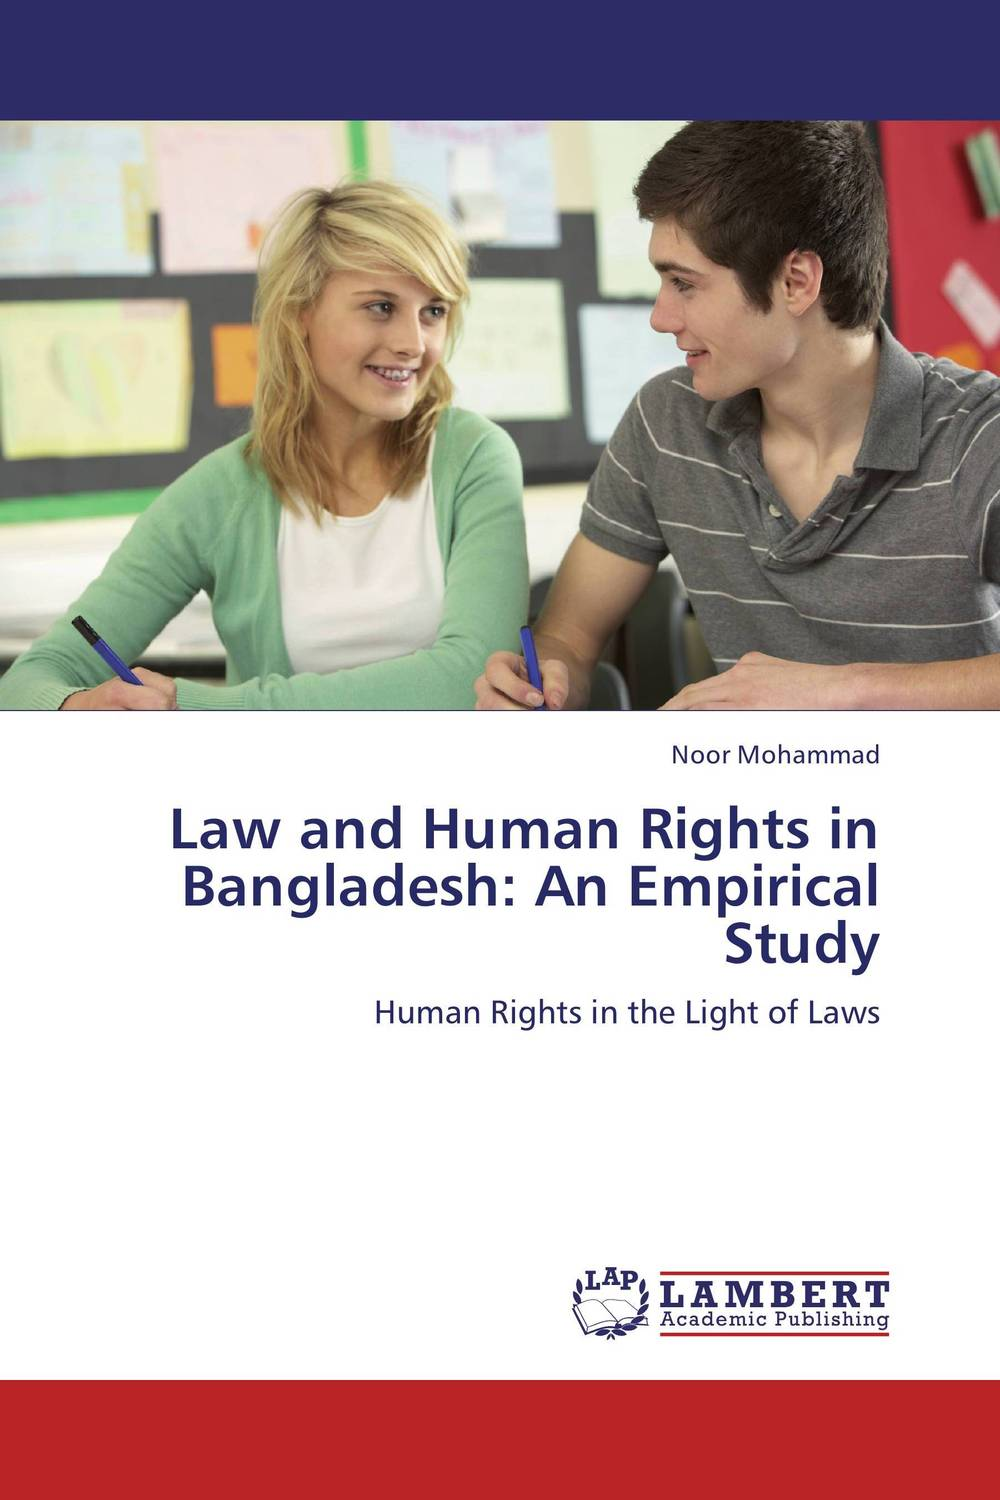 Law and Human Rights in Bangladesh: An Empirical Study foreign policy as a means for advancing human rights